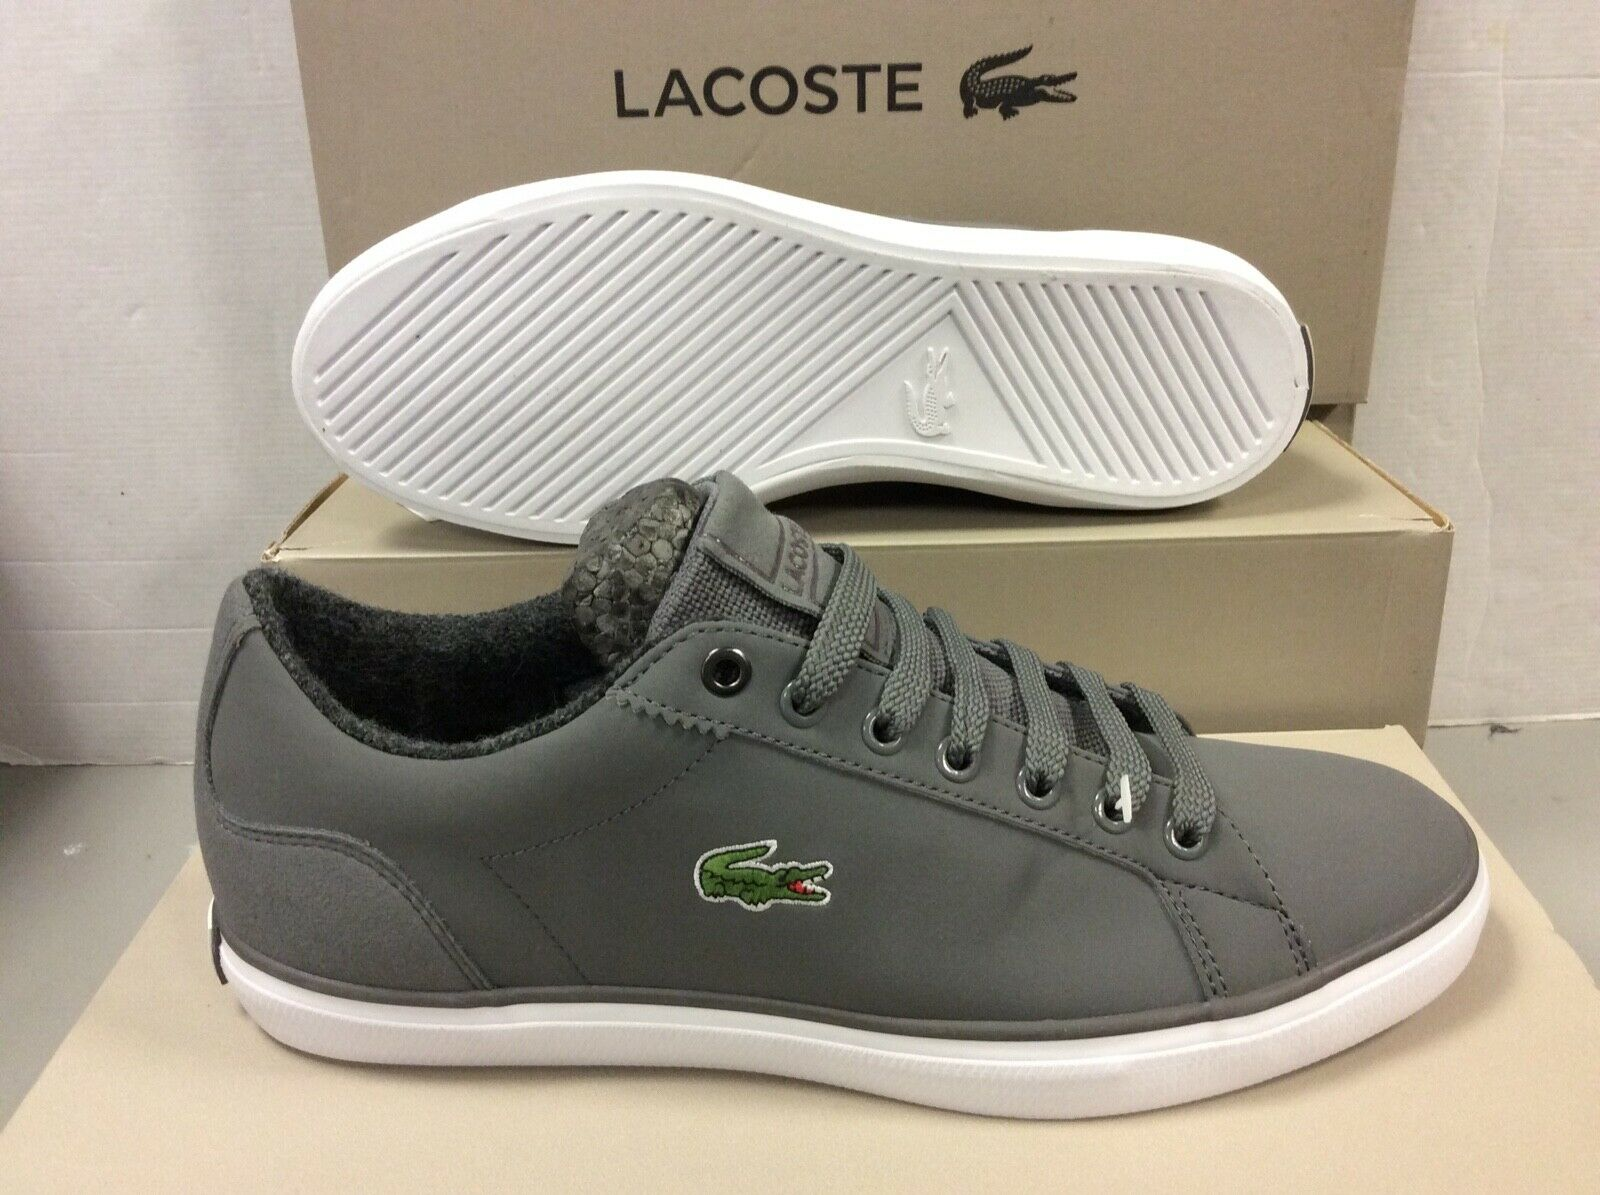 Lacoste LEROND 417 Men's Sneakers Trainers, Size     USA 7